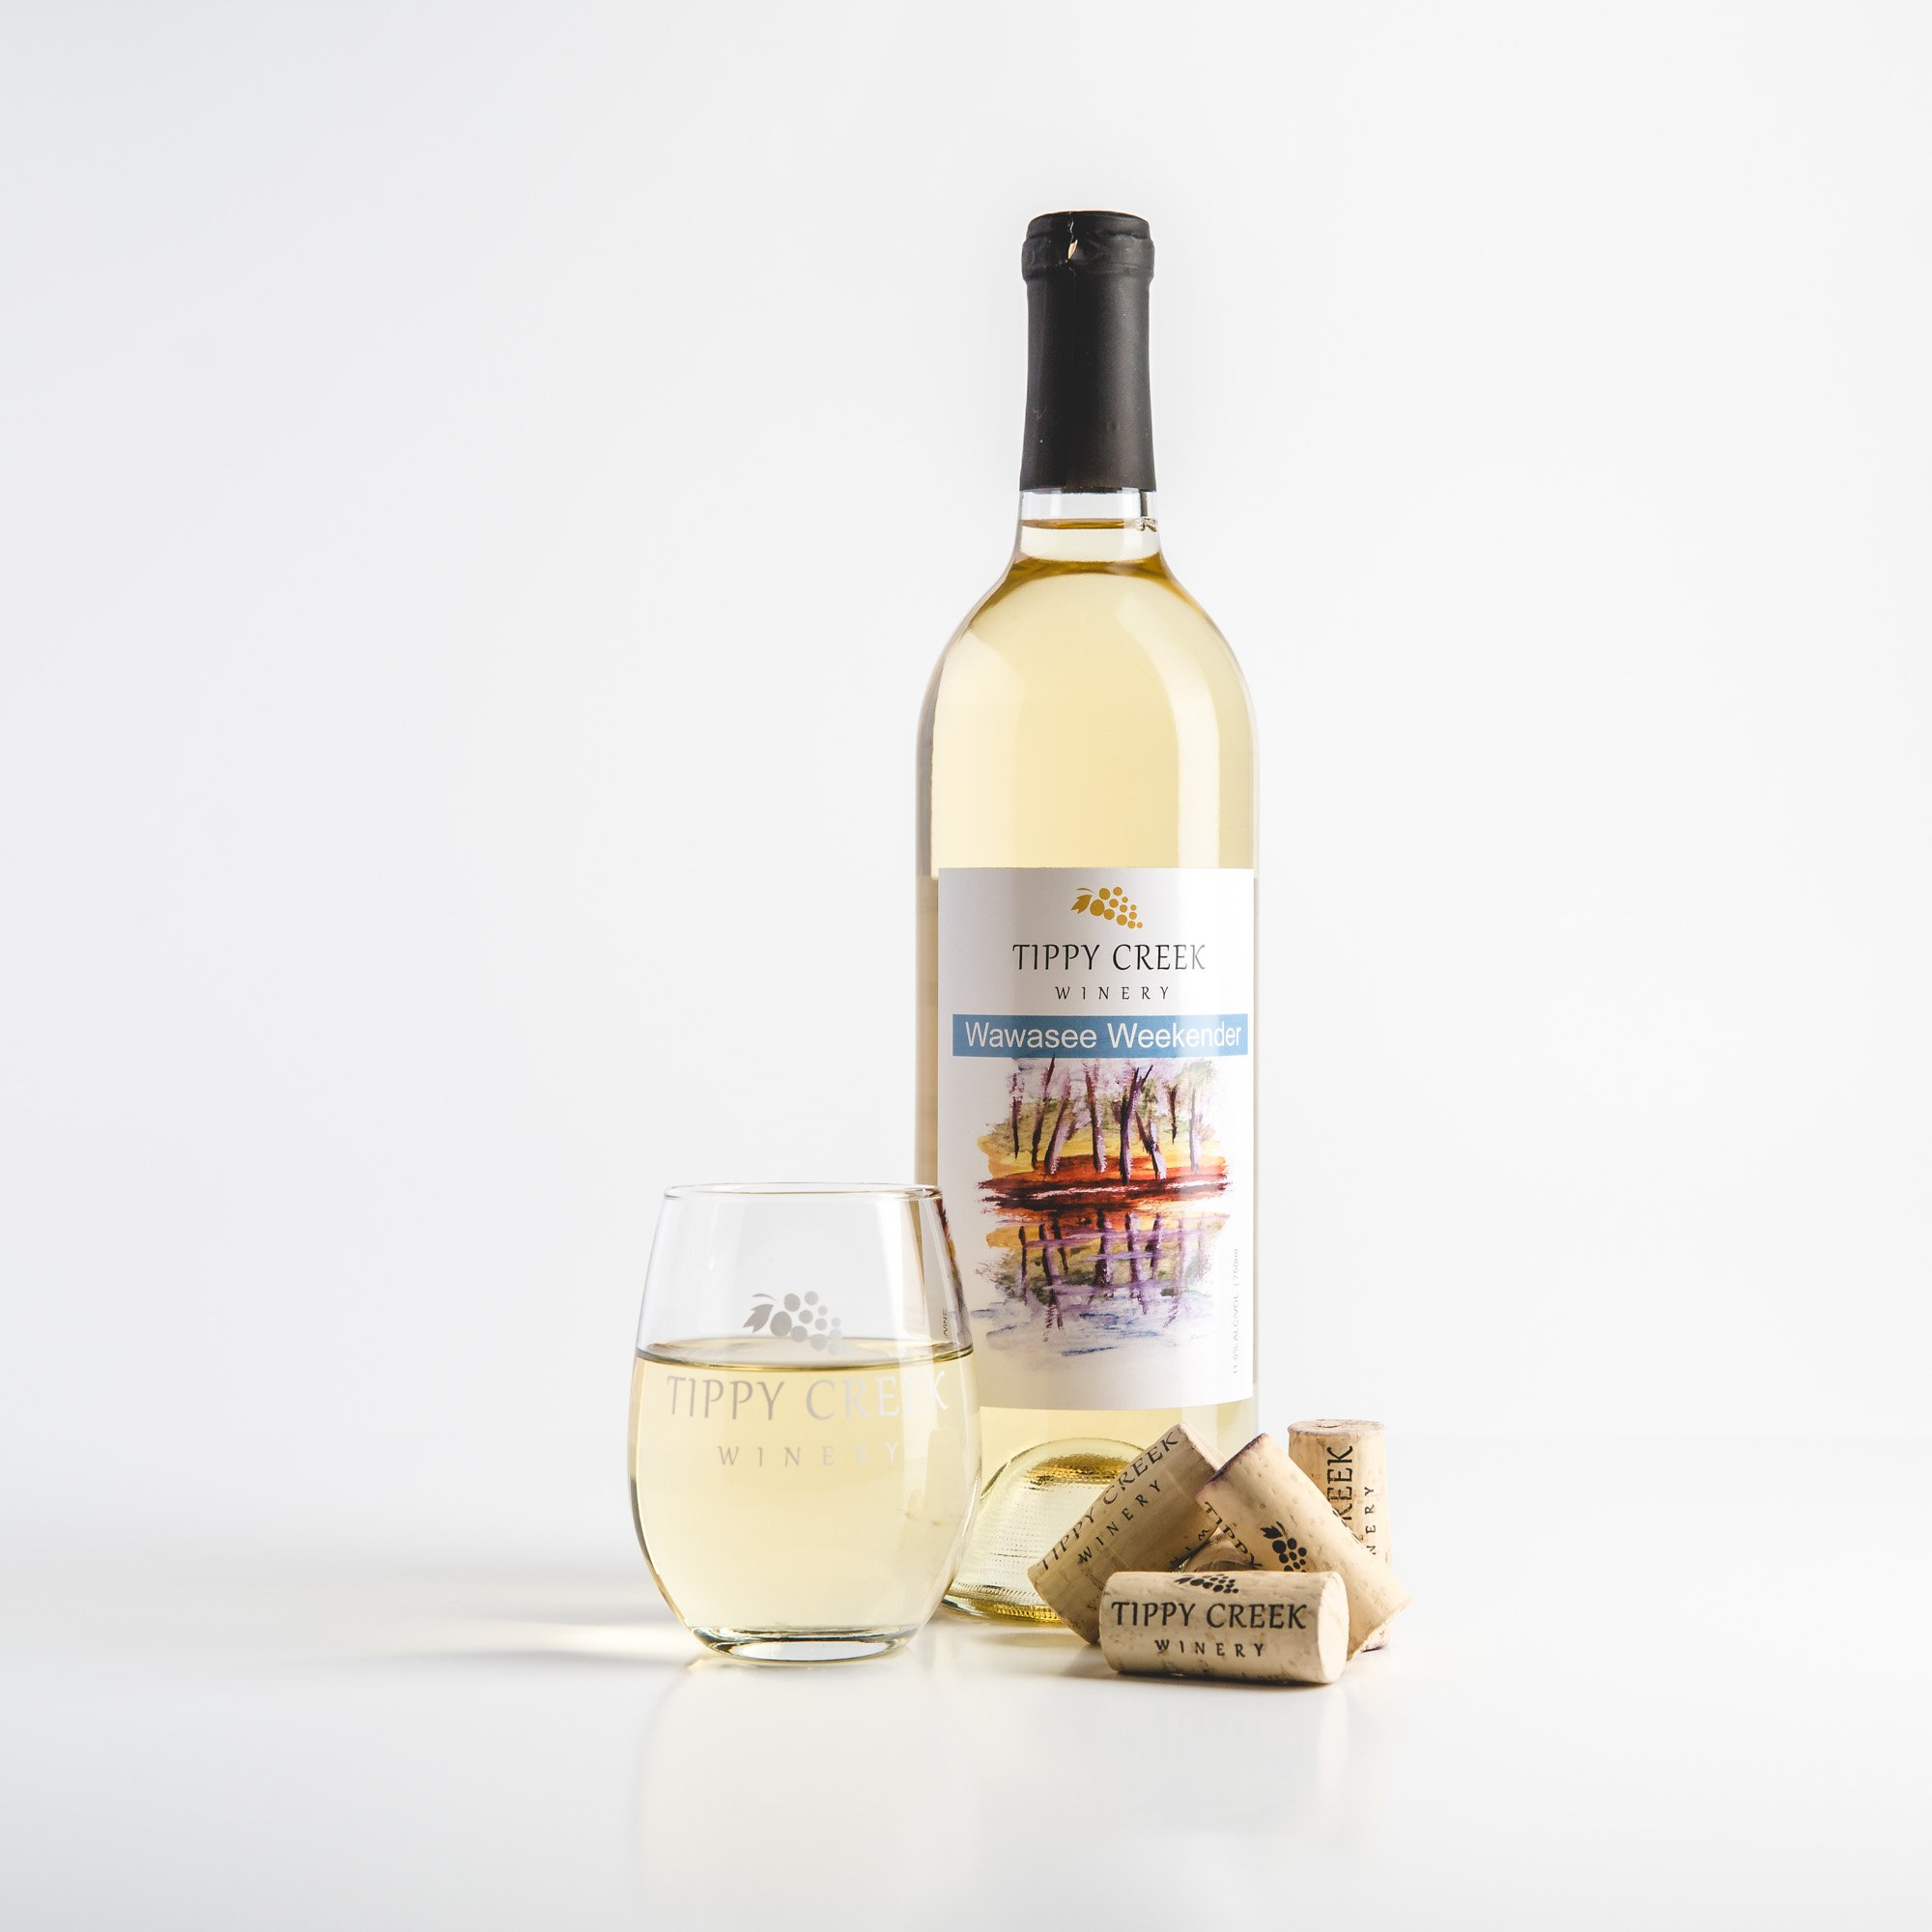 Wawasee Weekender White Wine by Tippy Creek Winery